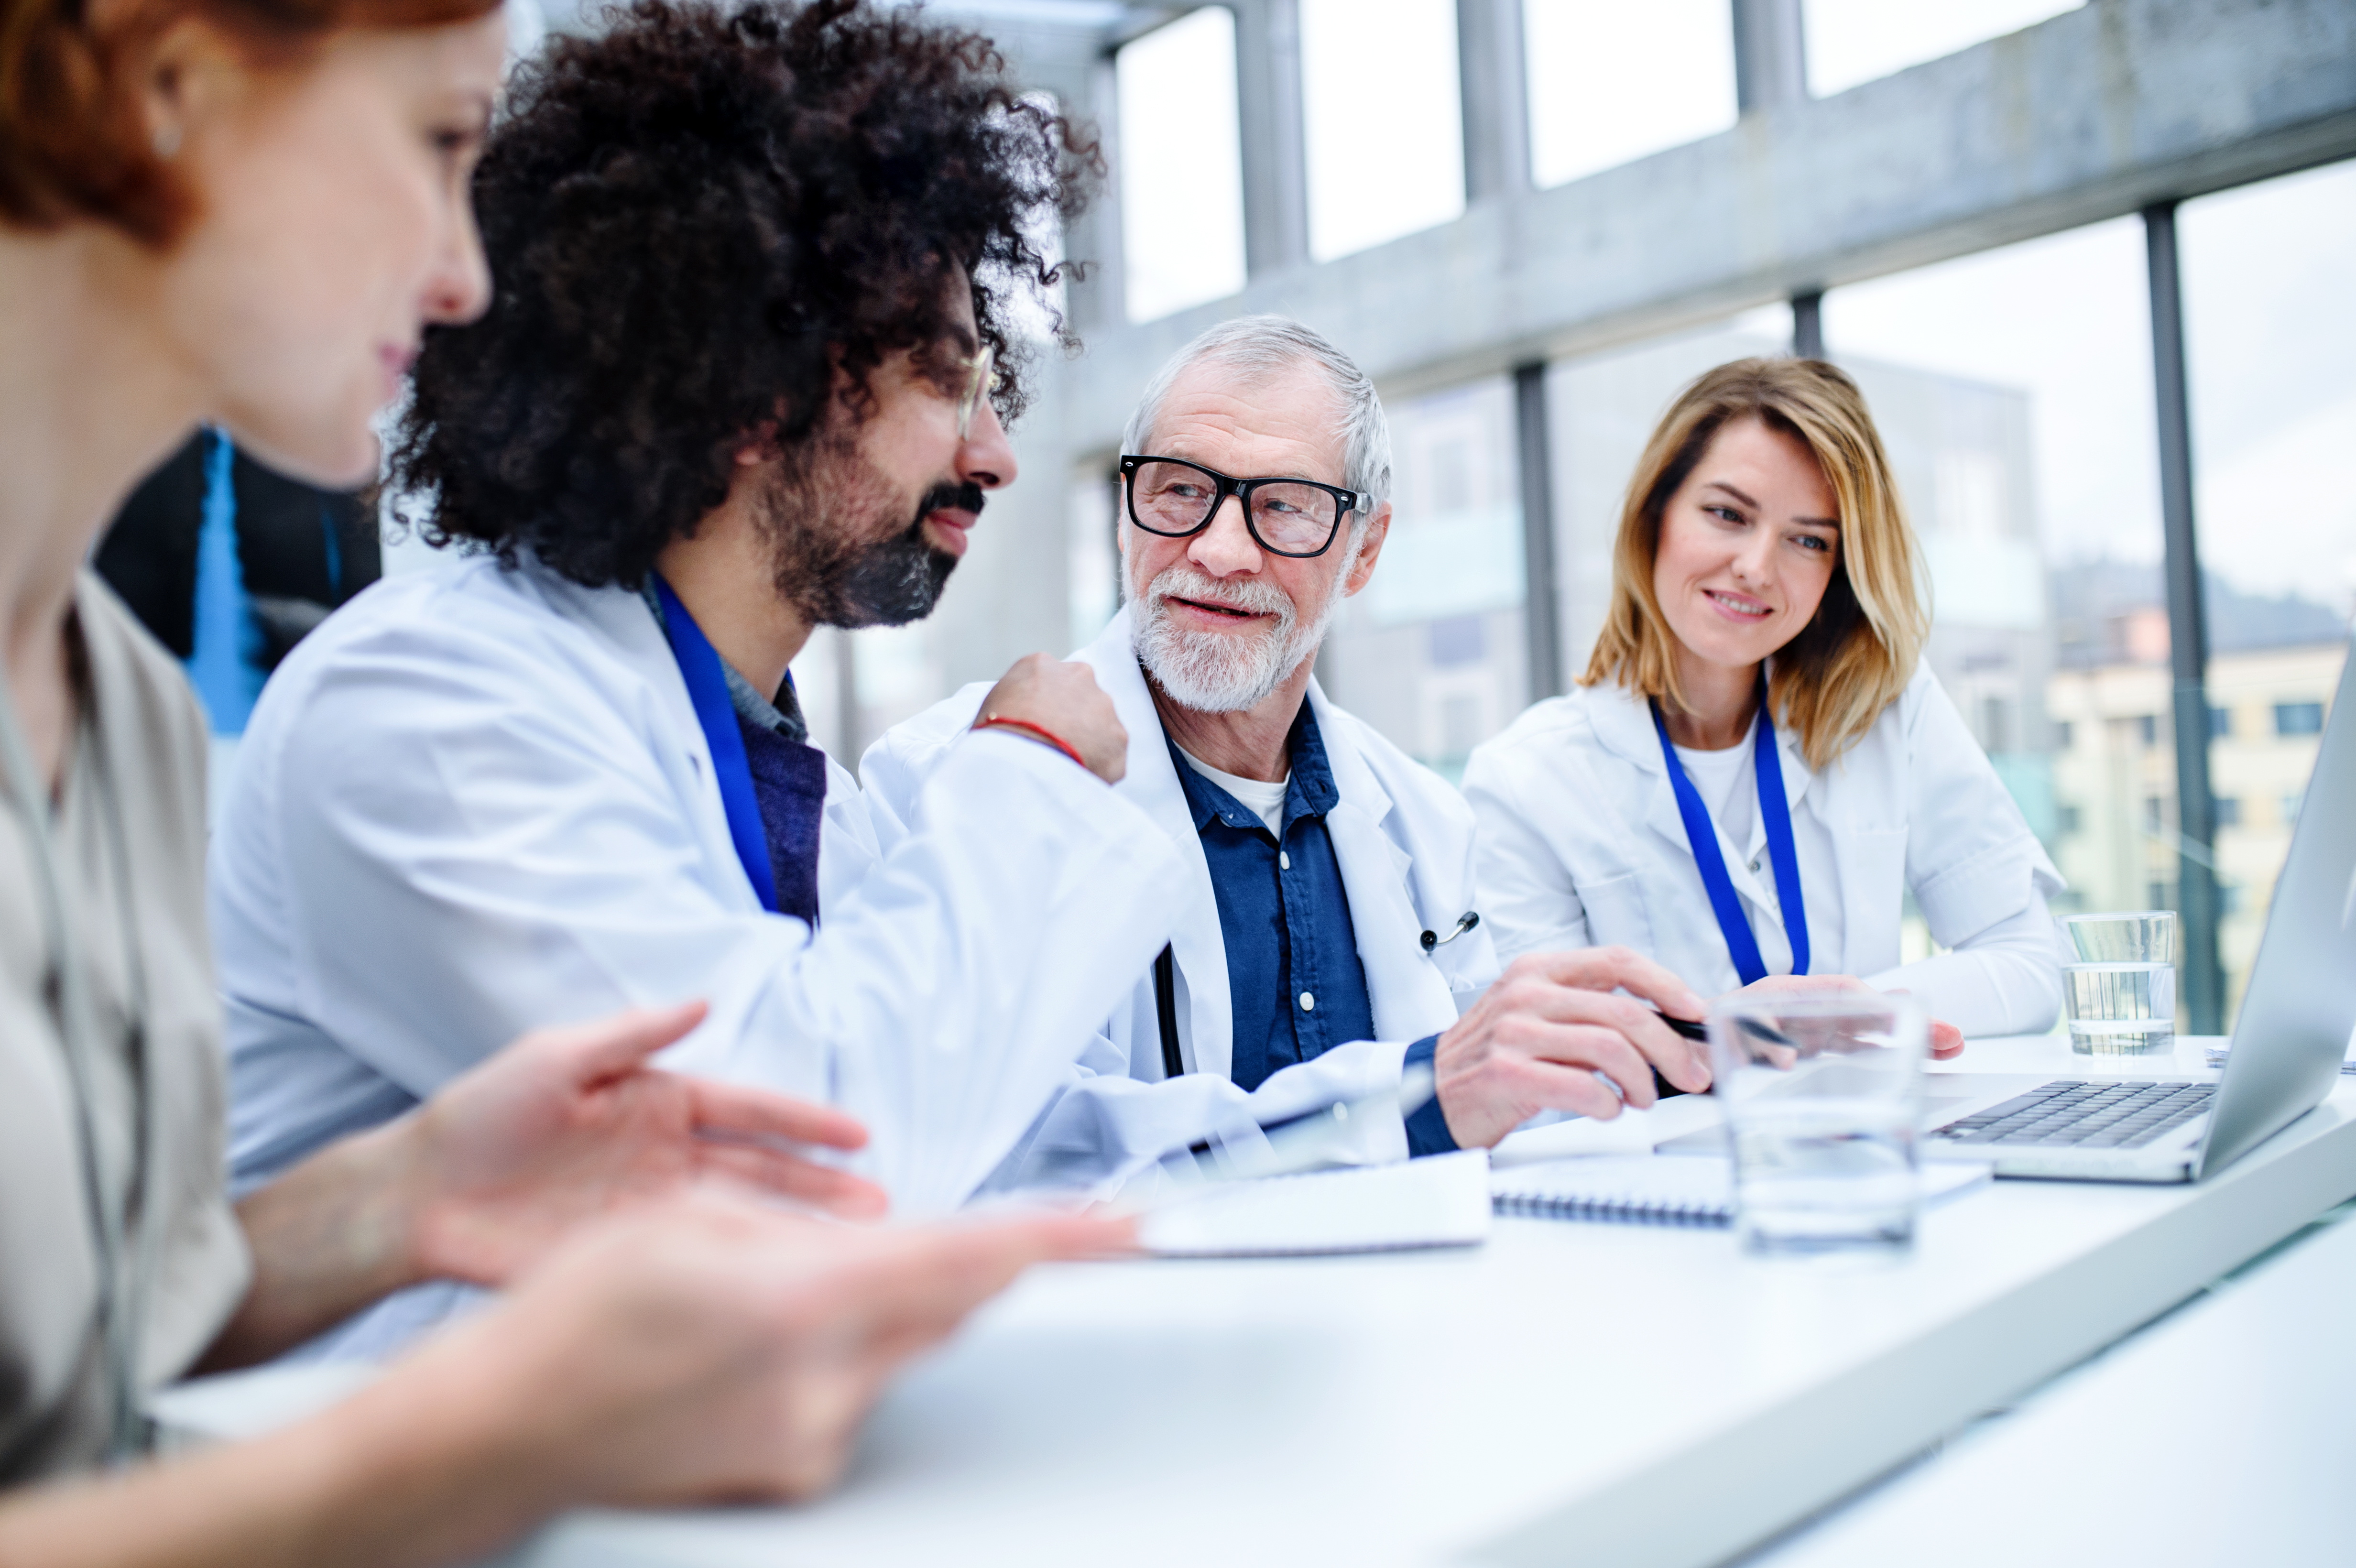 Clinicians working together to analyze results of the hospitals' program